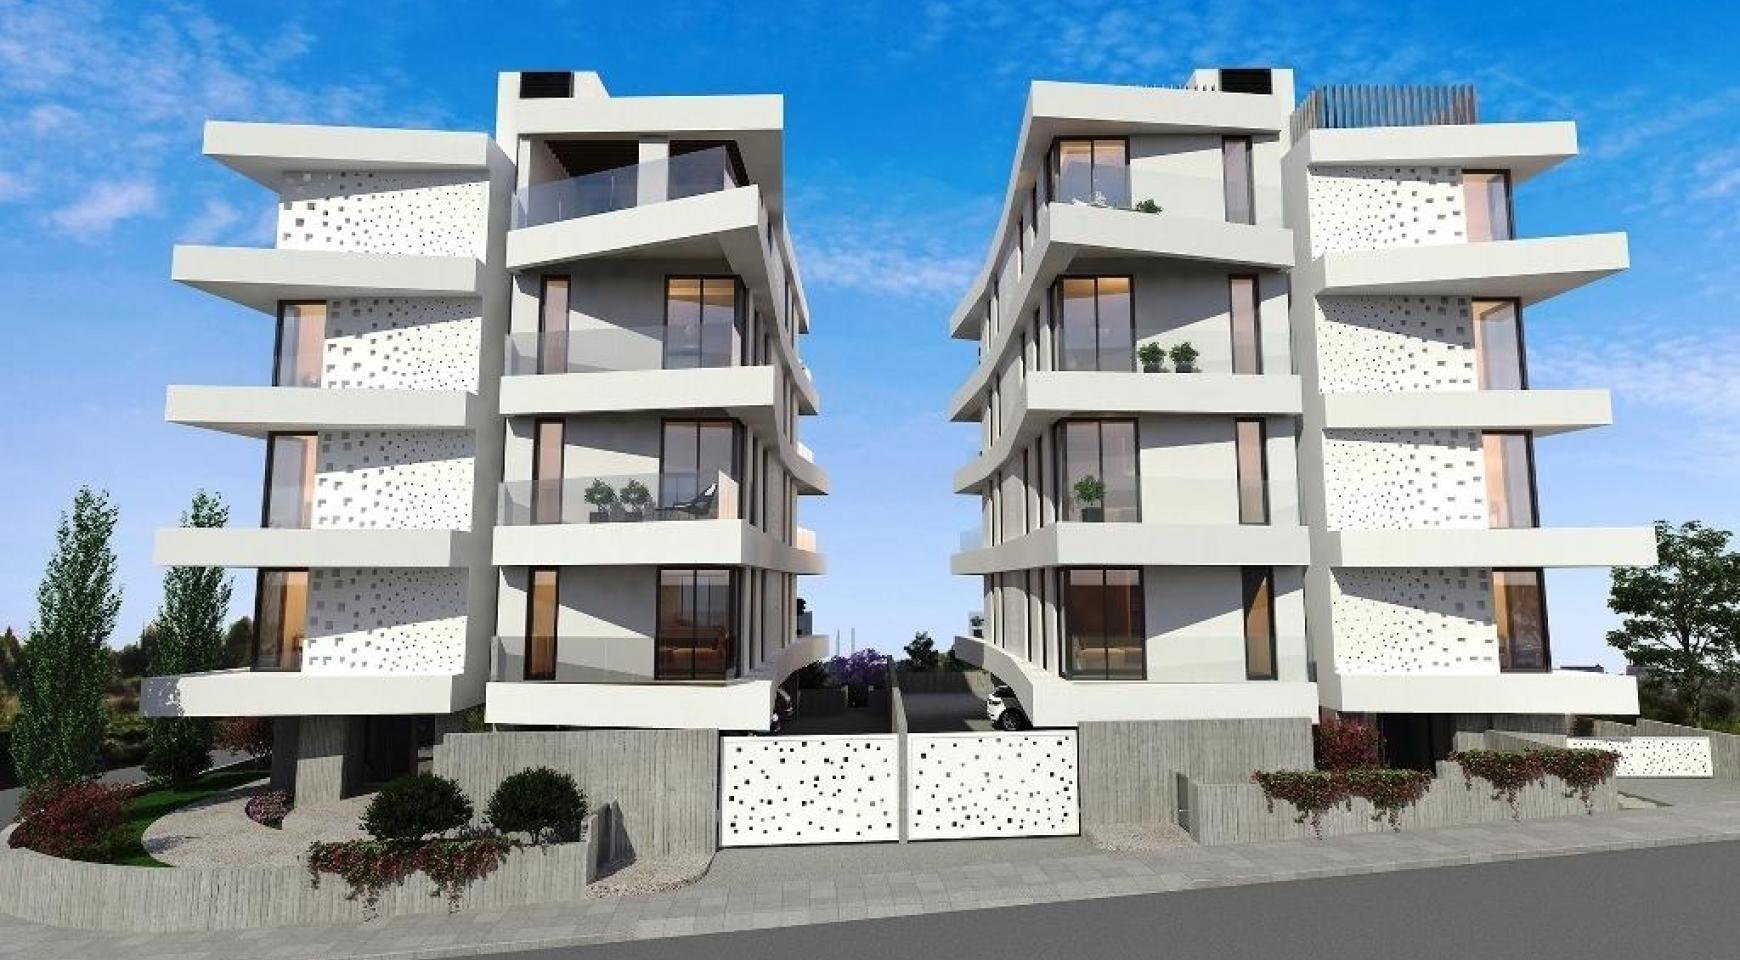 New 3 Bedroom Apartment in a Contemporary Building in Germasogeia - 5